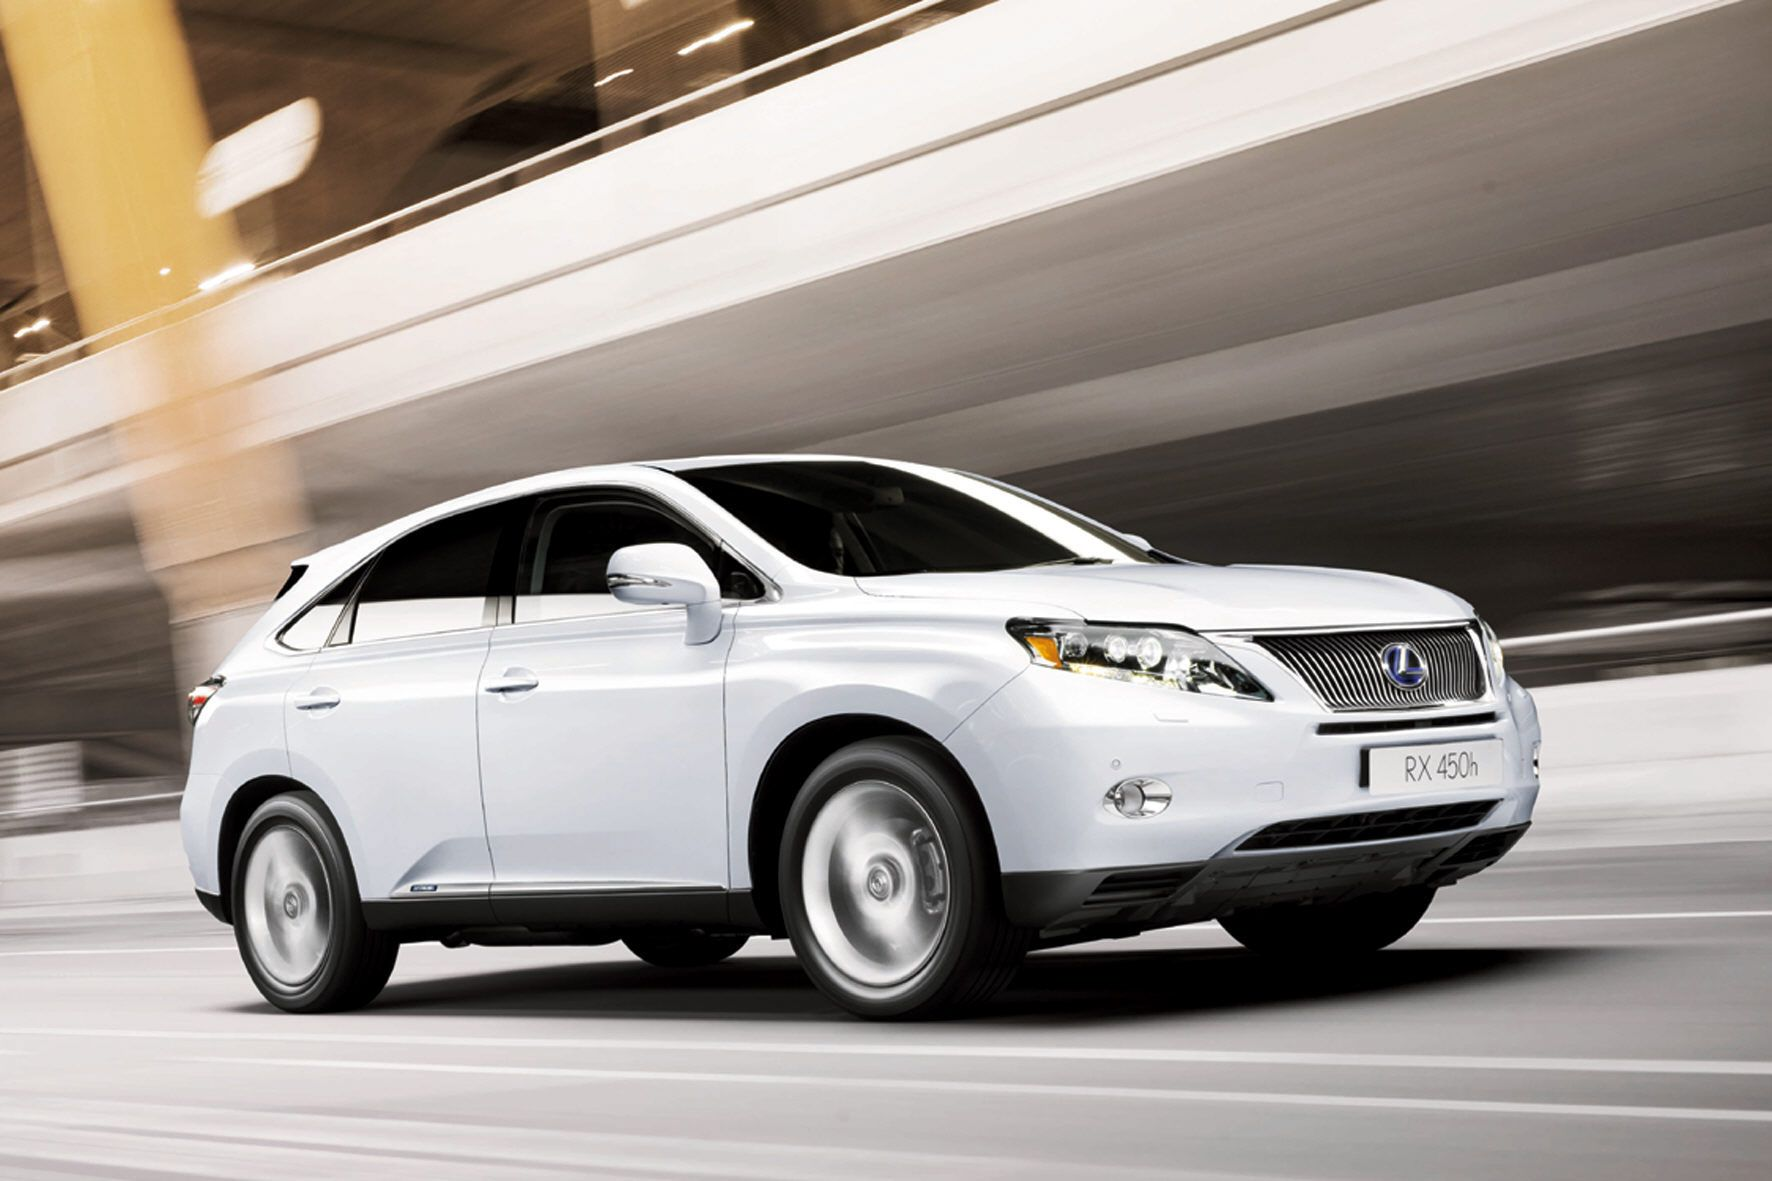 The lexus rx 450h suv luxury and power in an suv what more could